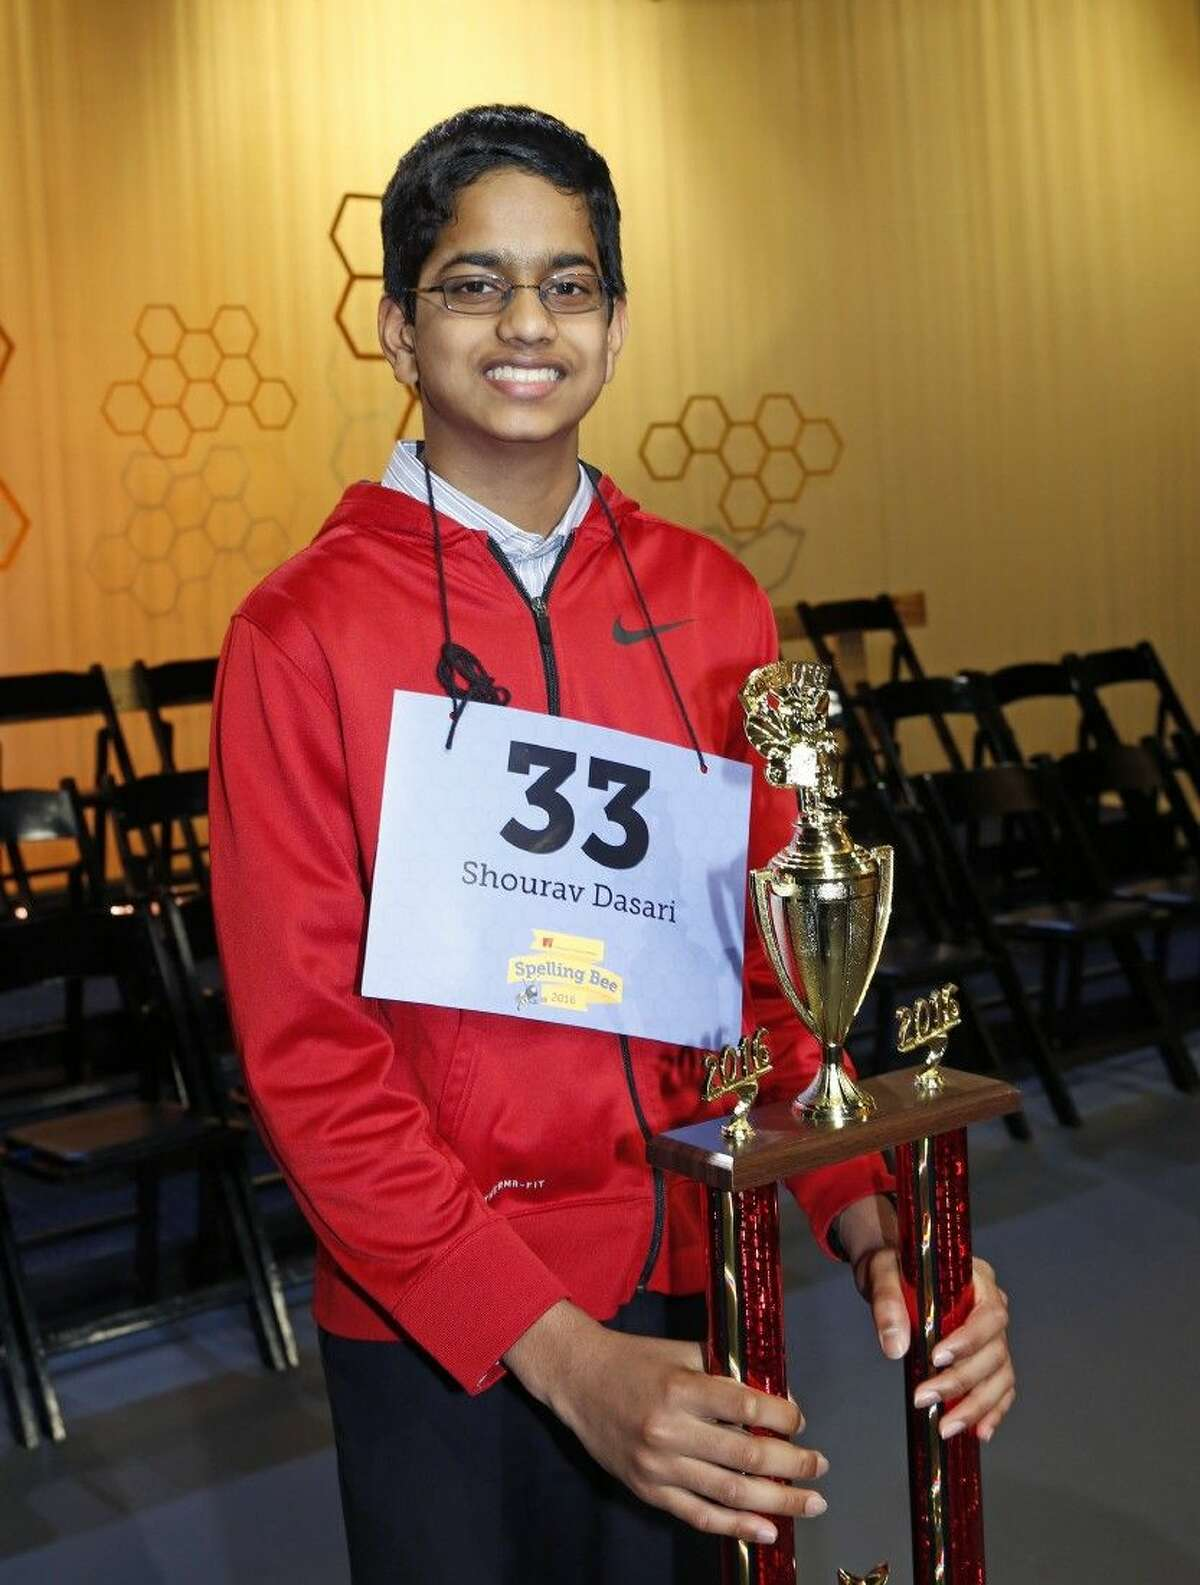 2016 Houston Public Media Spelling Bee co-champion, Shourav Dasari from McCullough Jr. High poses with his trophy after 14 rounds.